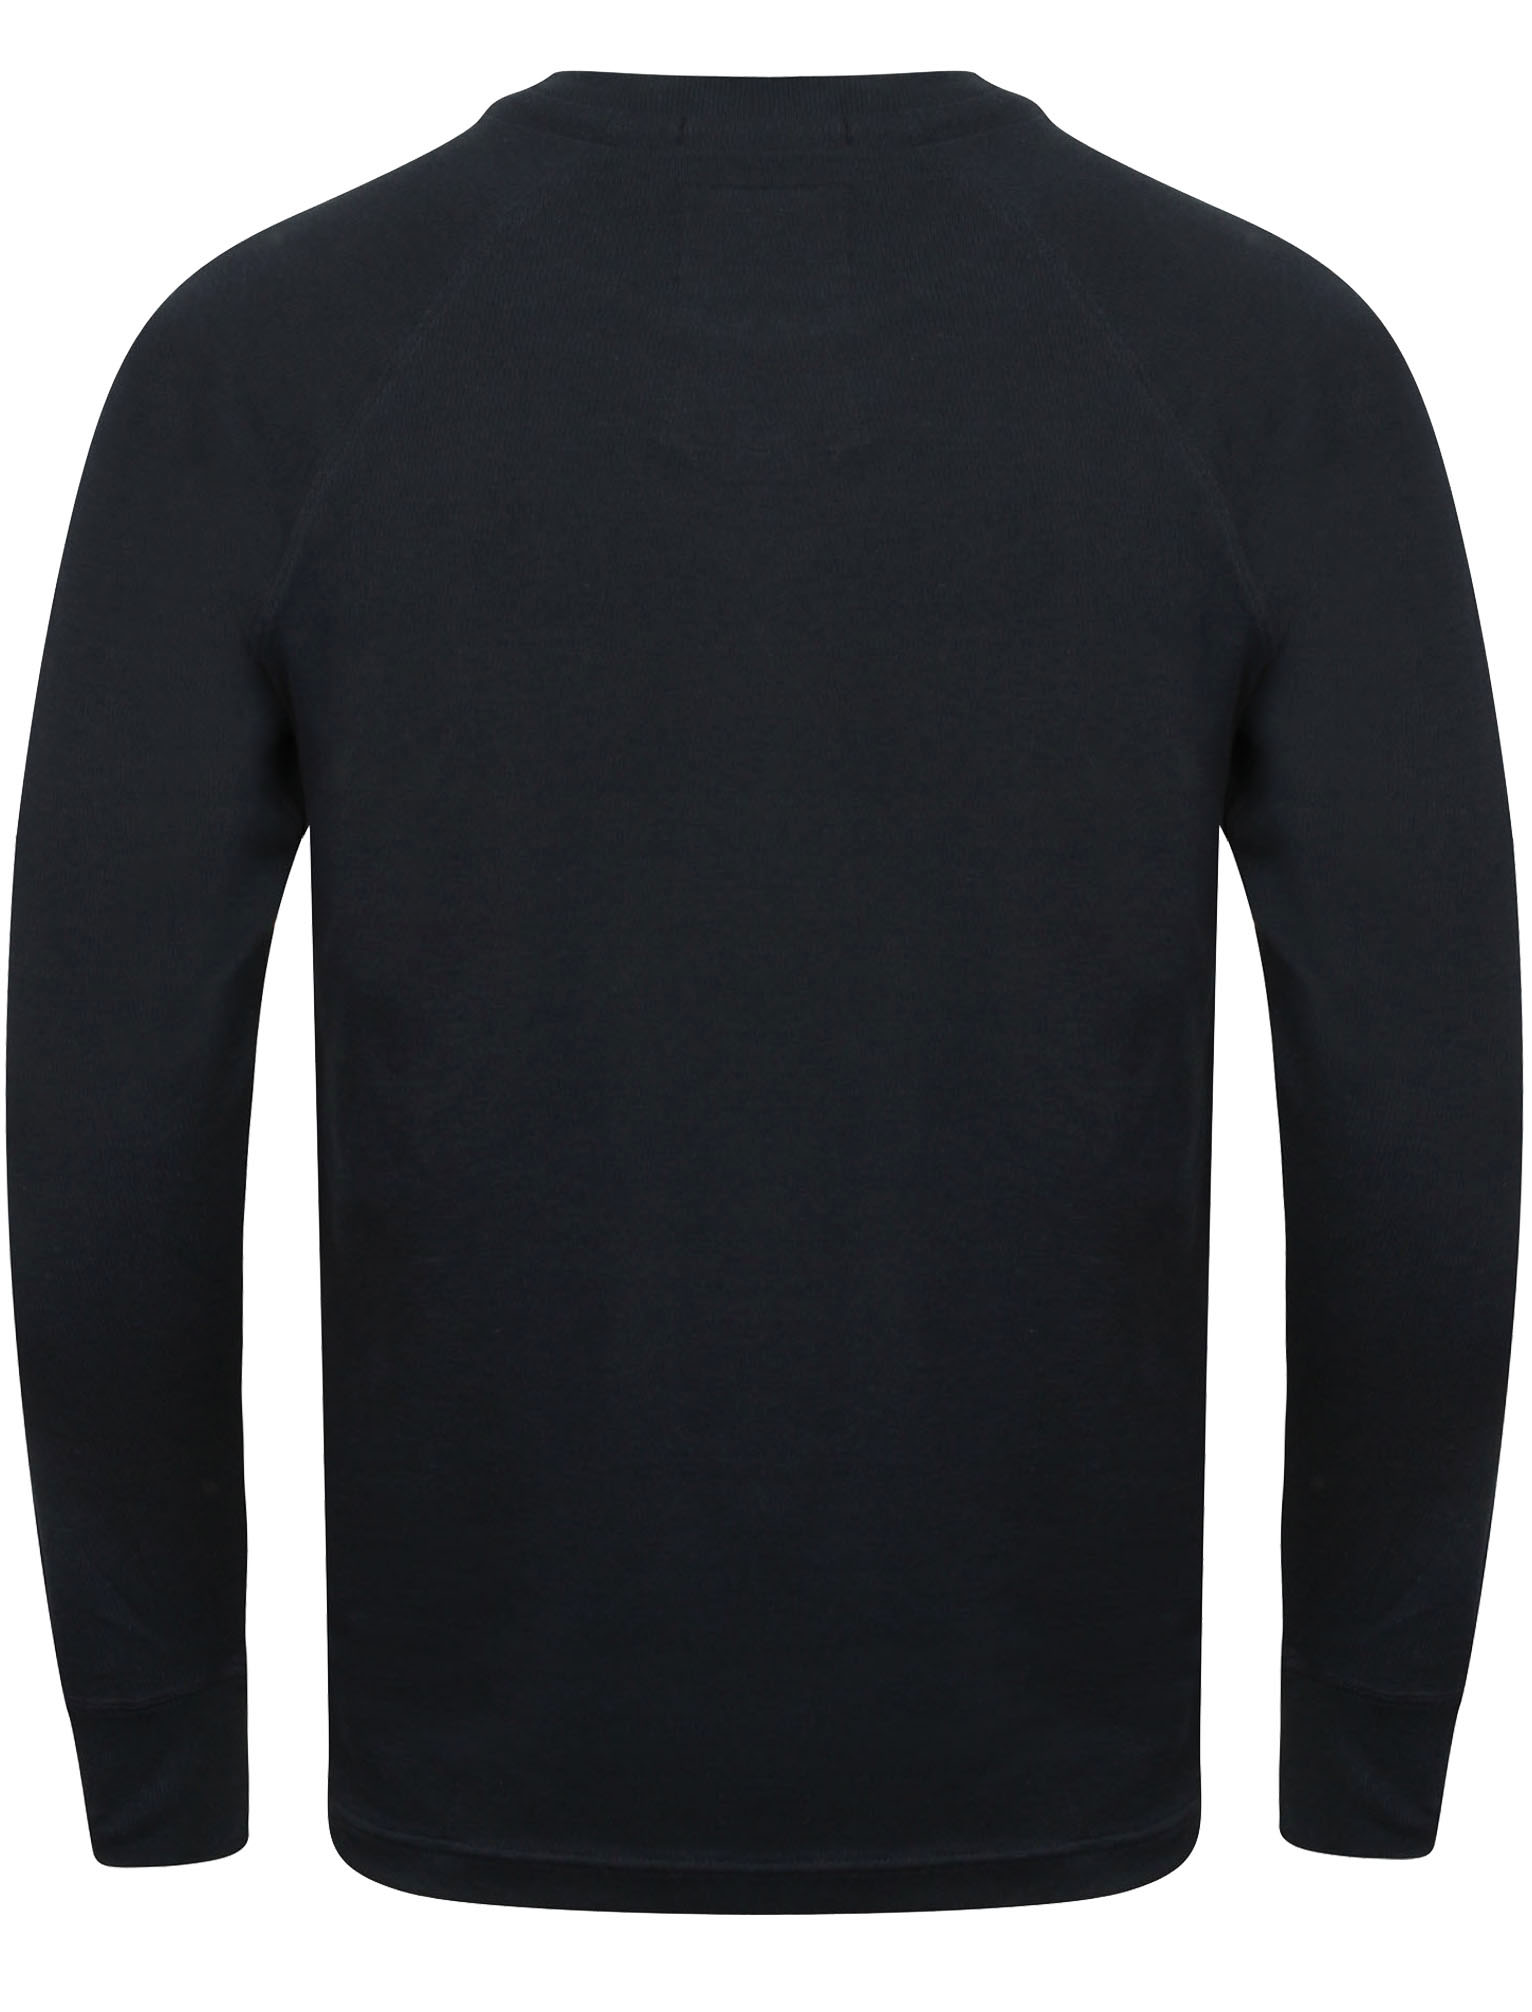 New-Mens-Tokyo-Laundry-Branded-Soft-Jersey-Long-Sleeve-Tops-T-Shirts-Size-S-XL thumbnail 21